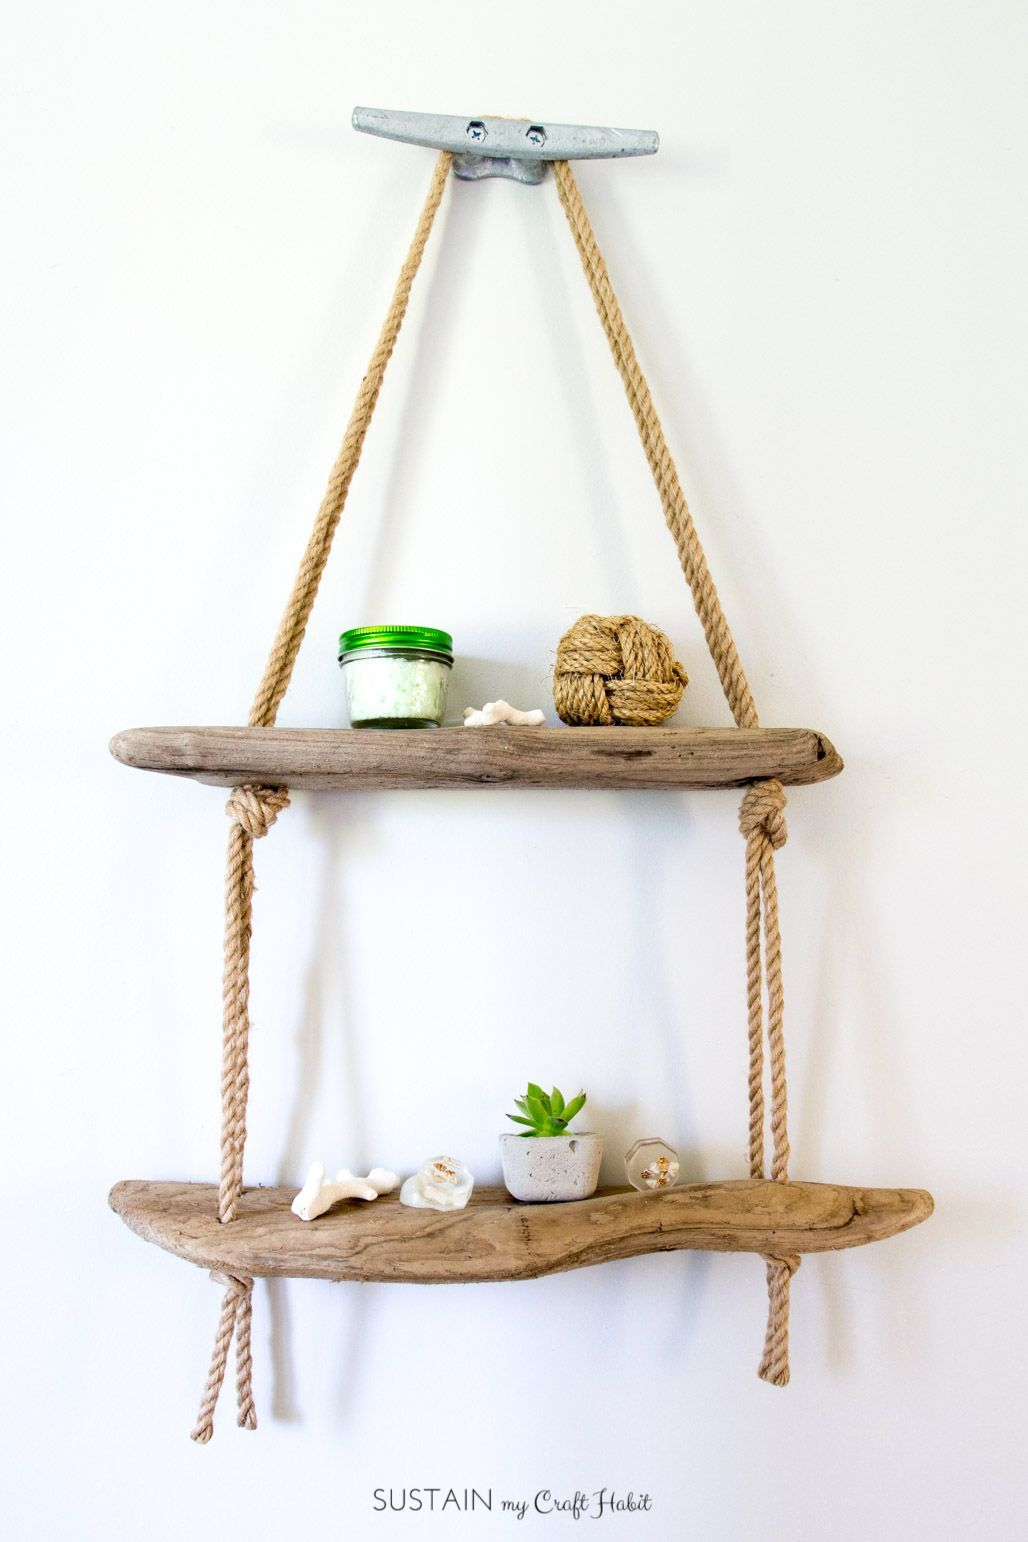 Diy Easiest But Effective Ways To Removing Black Mold From Bathroom Rope Shelves Hanging Rope Shelves Nautical Wall Decor